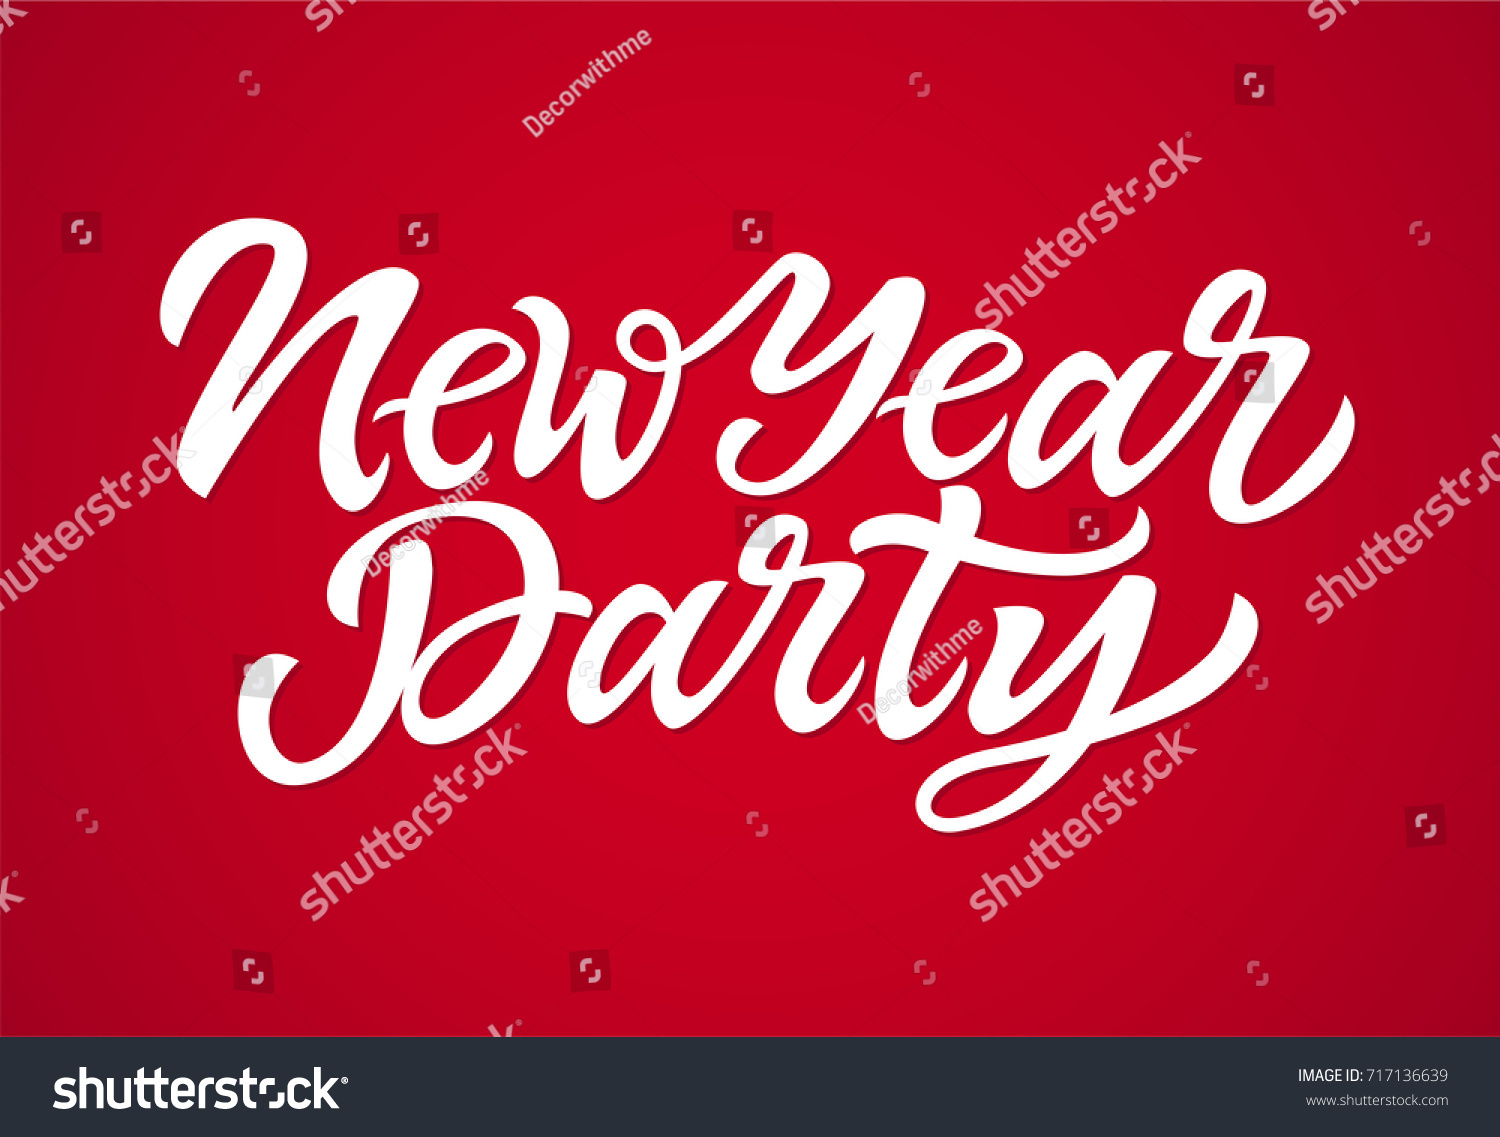 New Year Party Vector Hand Drawn Stock Vector (Royalty Free ...